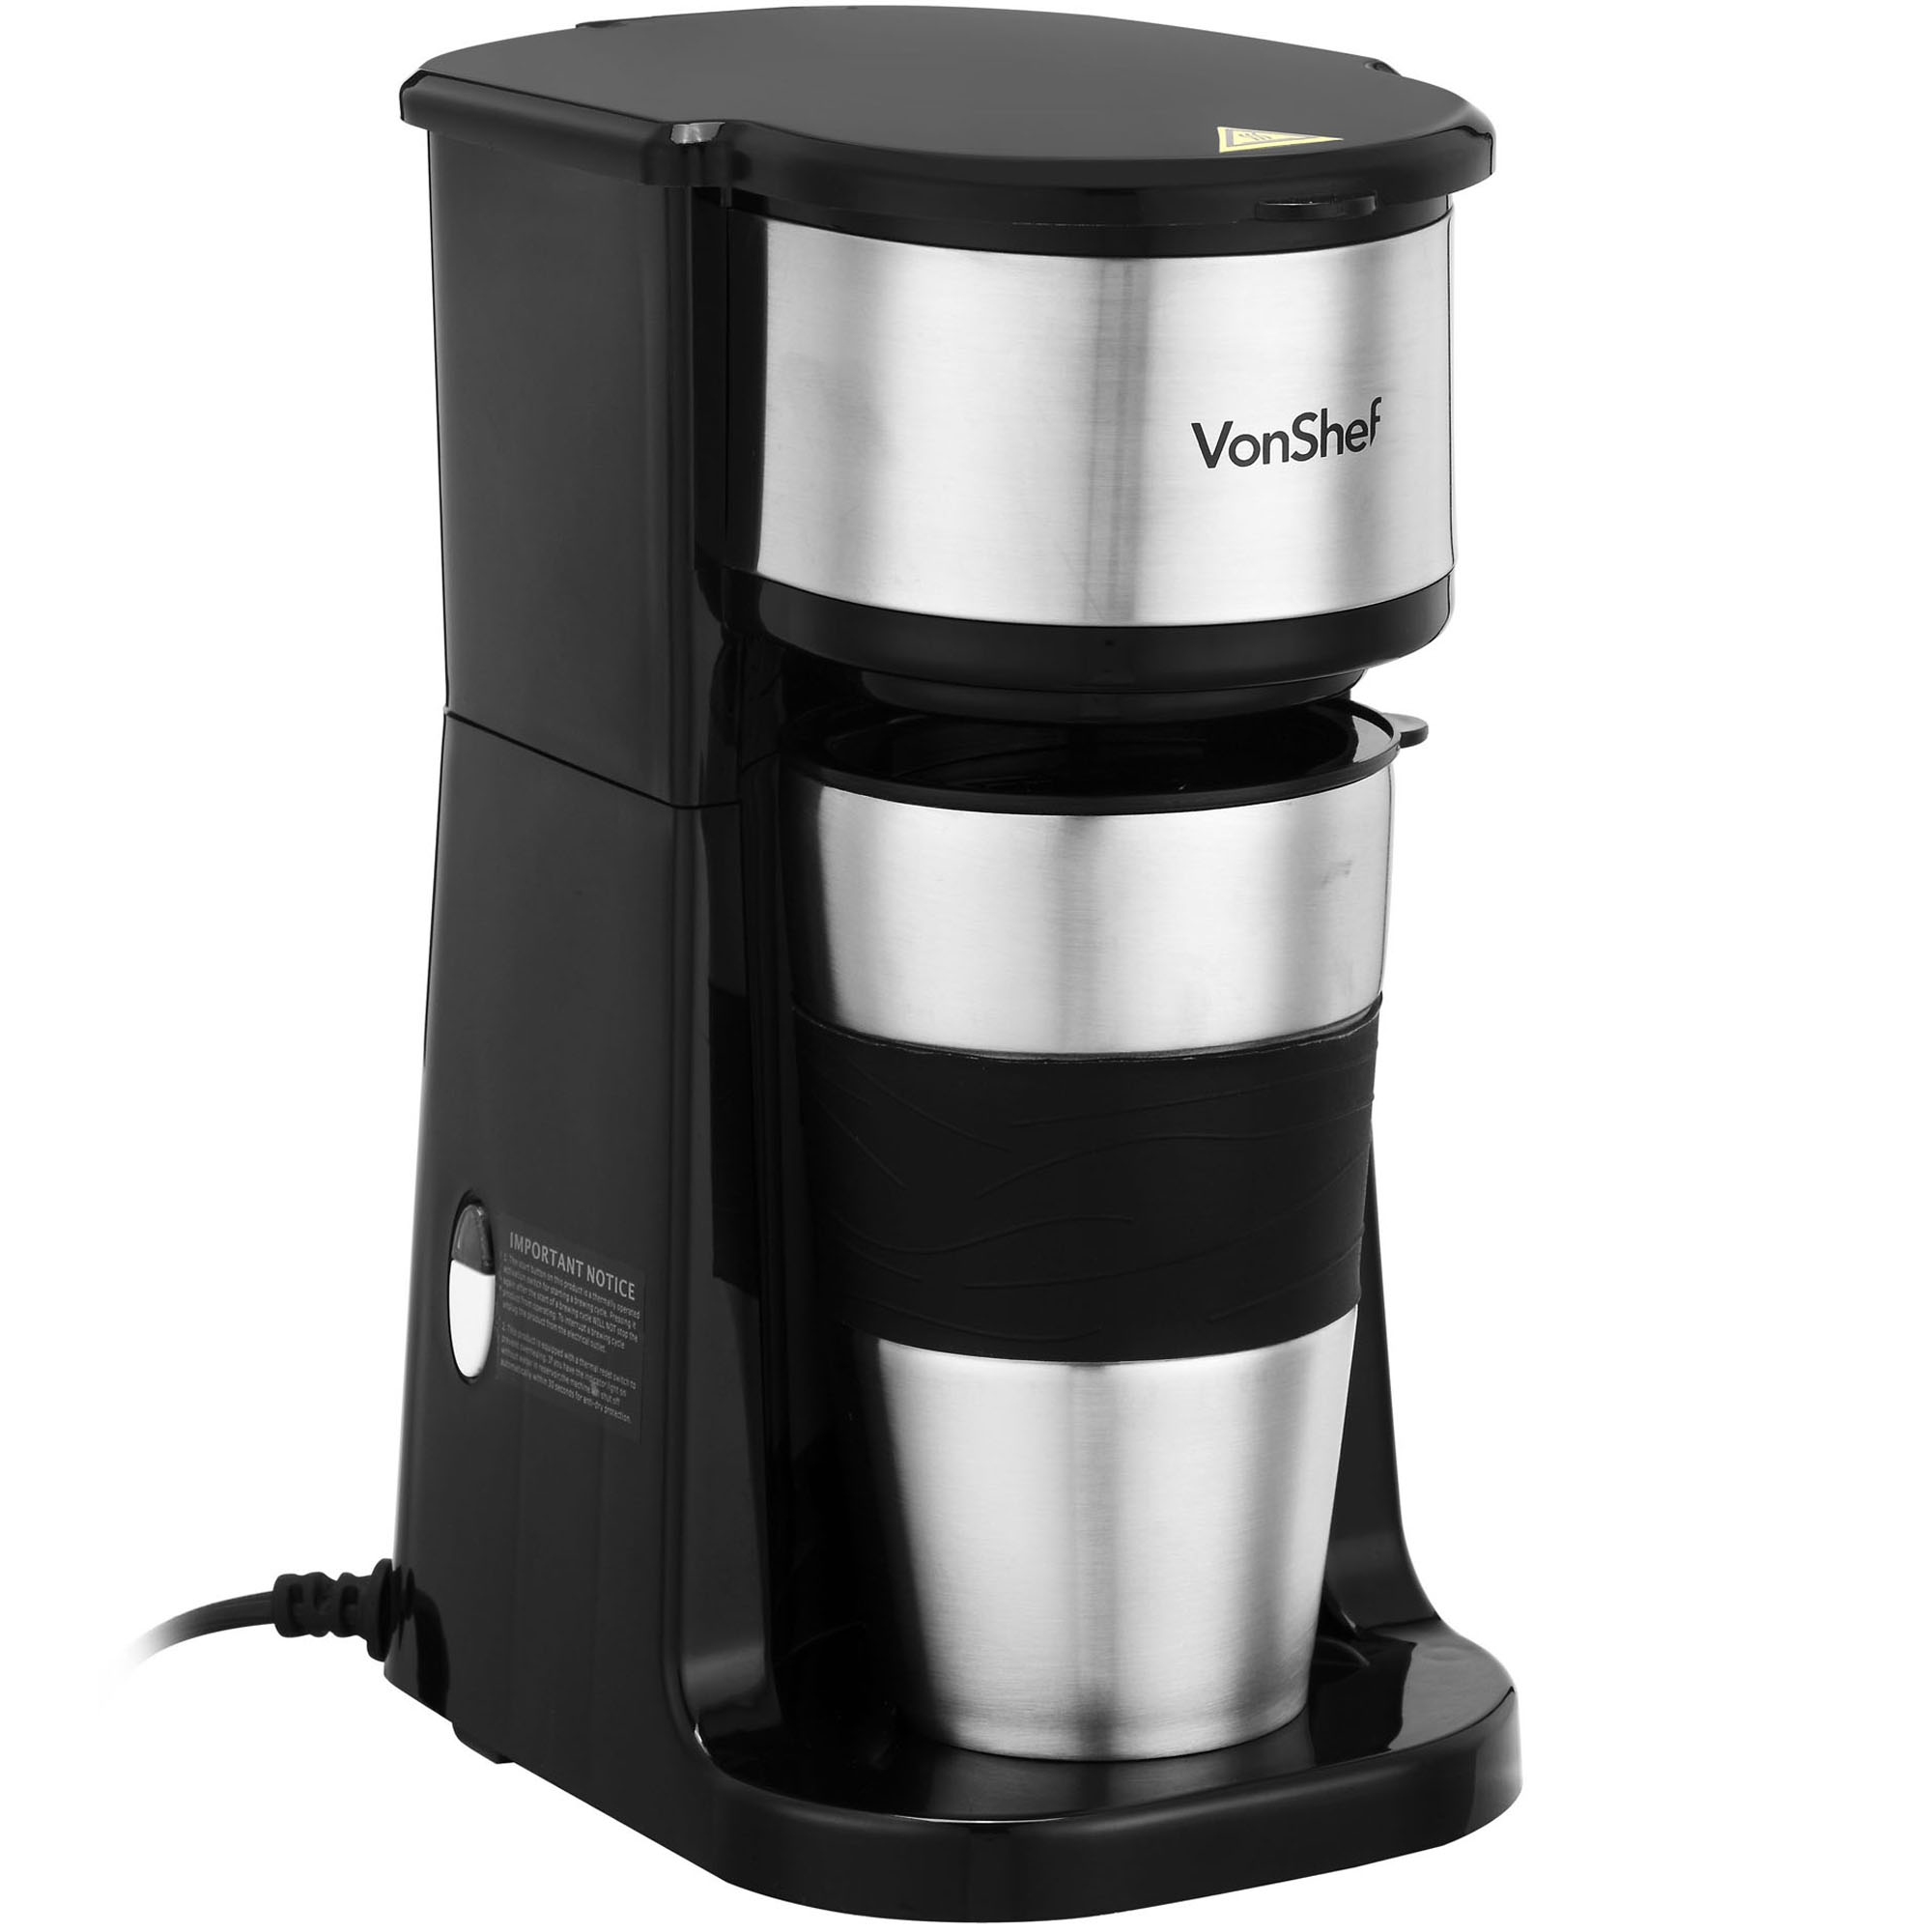 Coffee Maker That Fits Travel Mug : VonShef Personal Filter Coffee Machine Maker with 420ml Travel Mug & Lid eBay